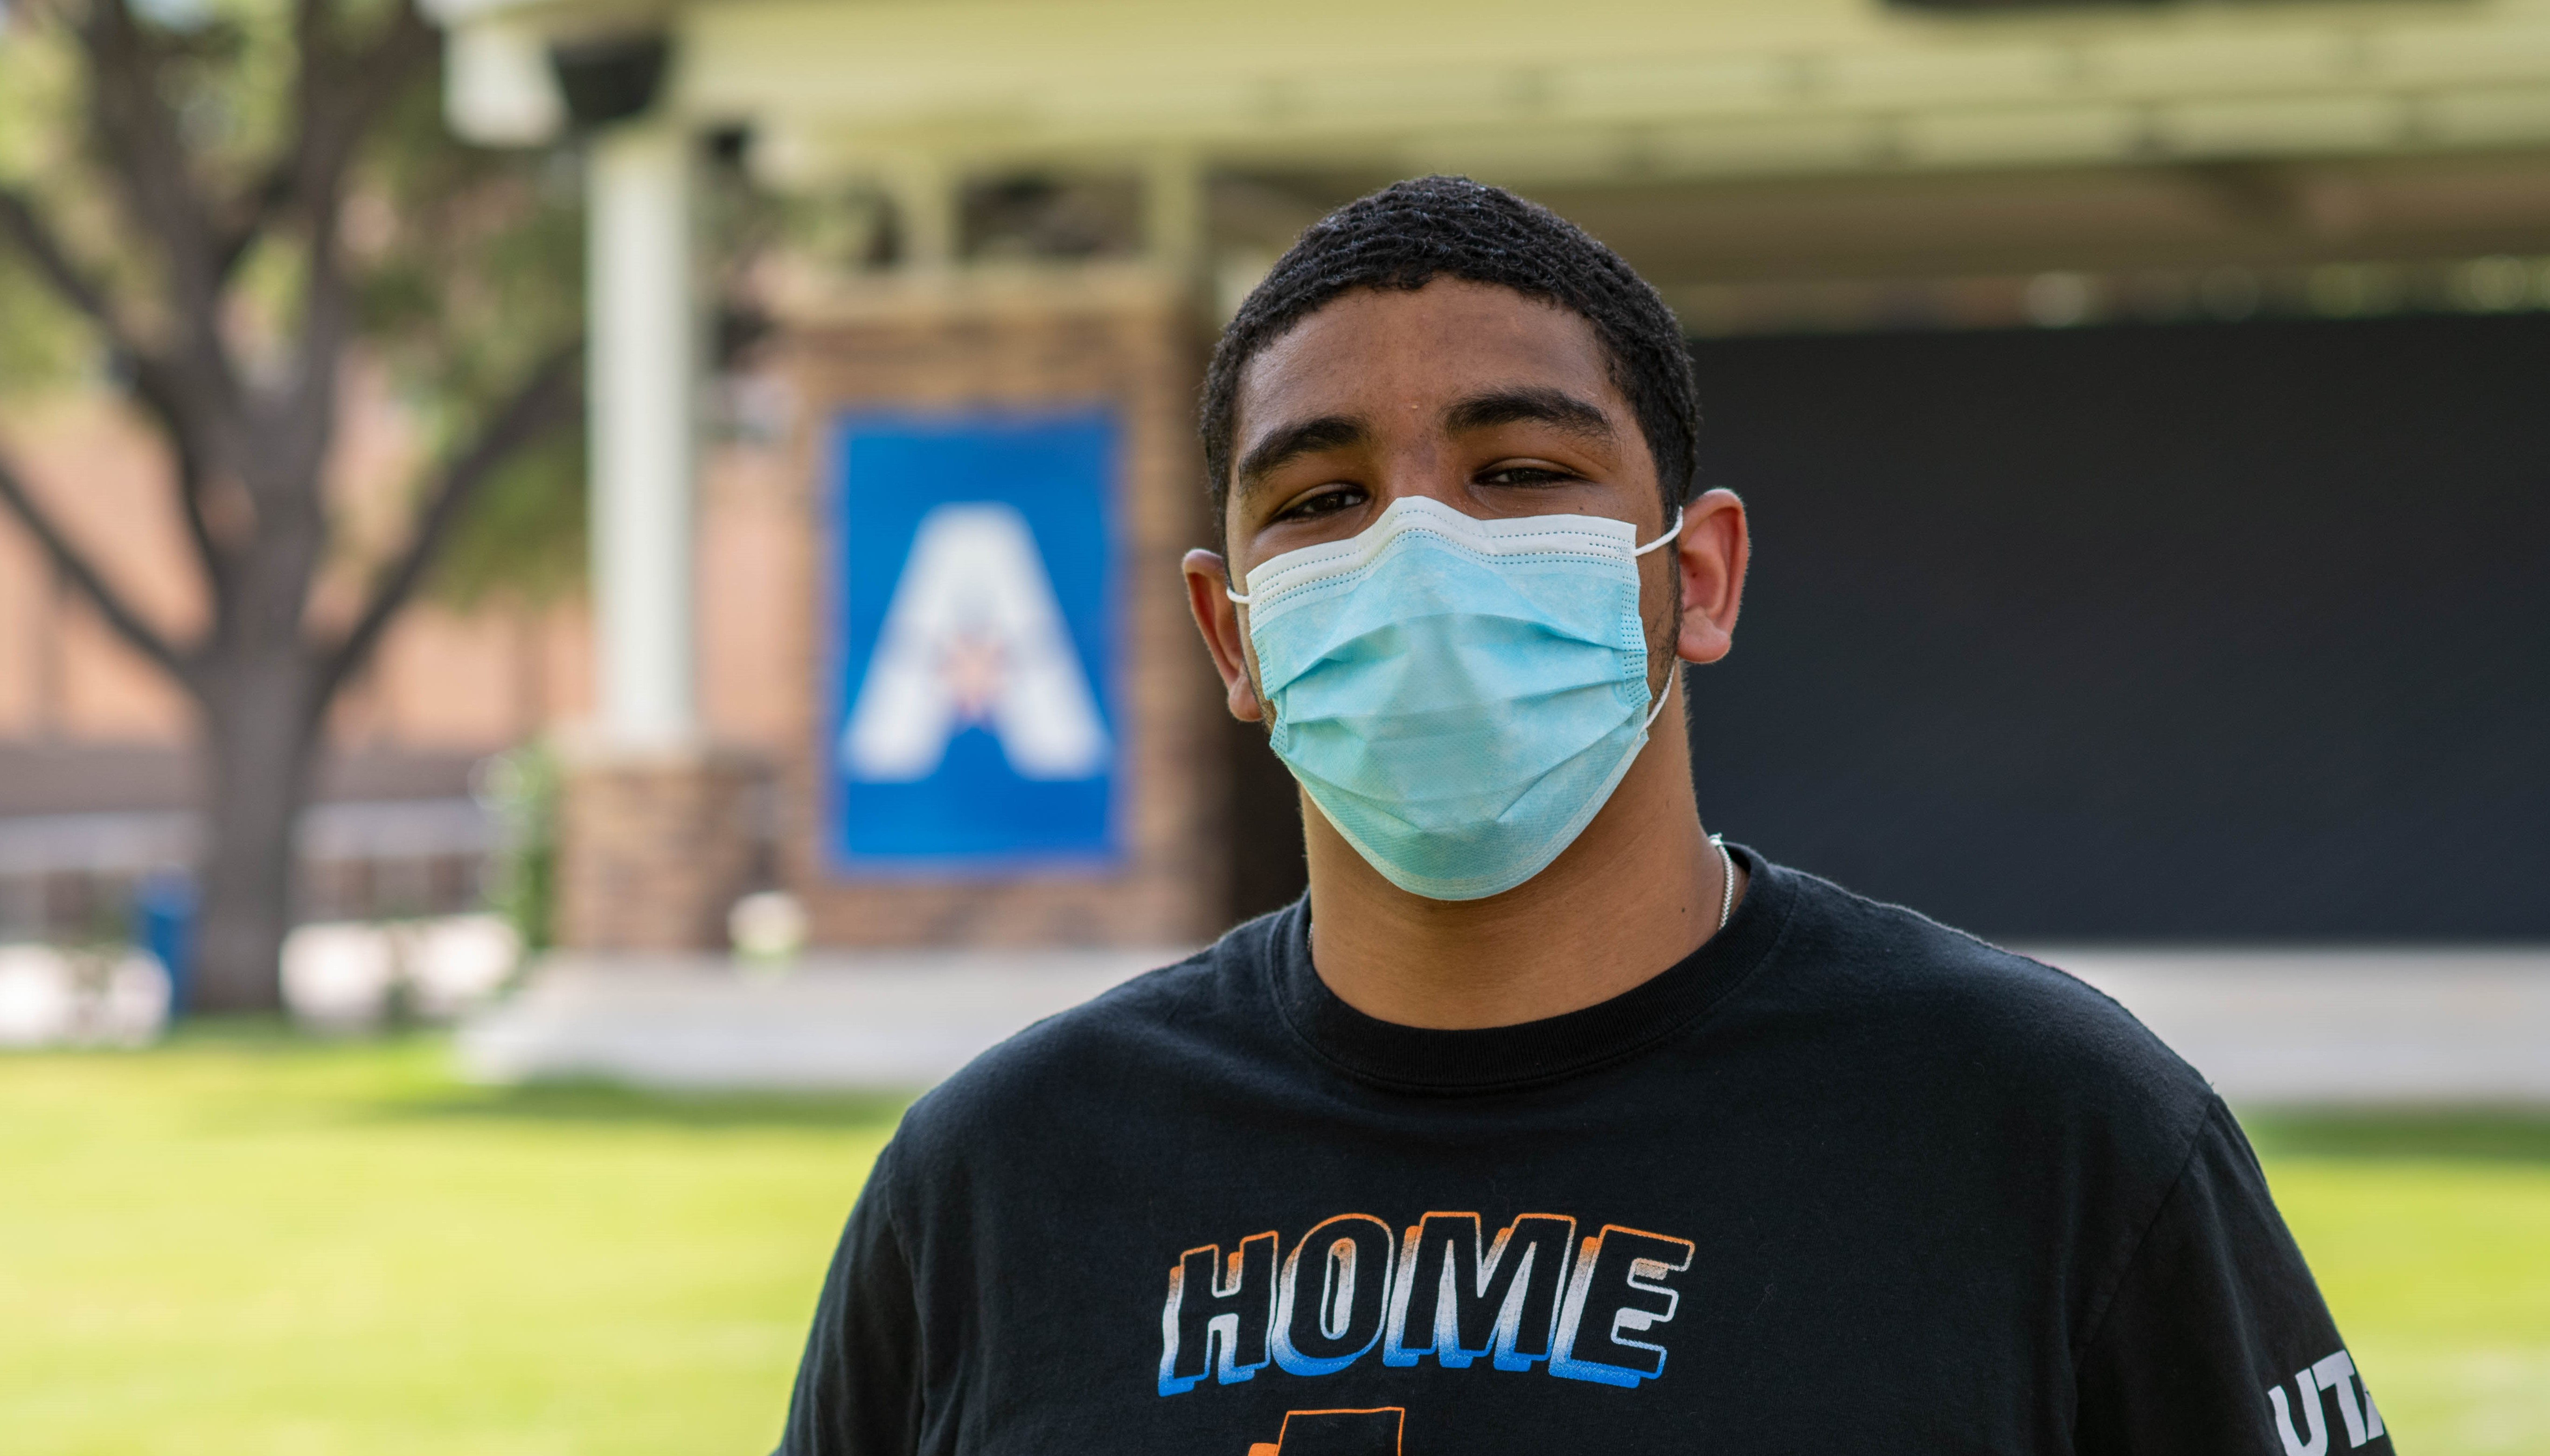 UTA Student outside with a mask on